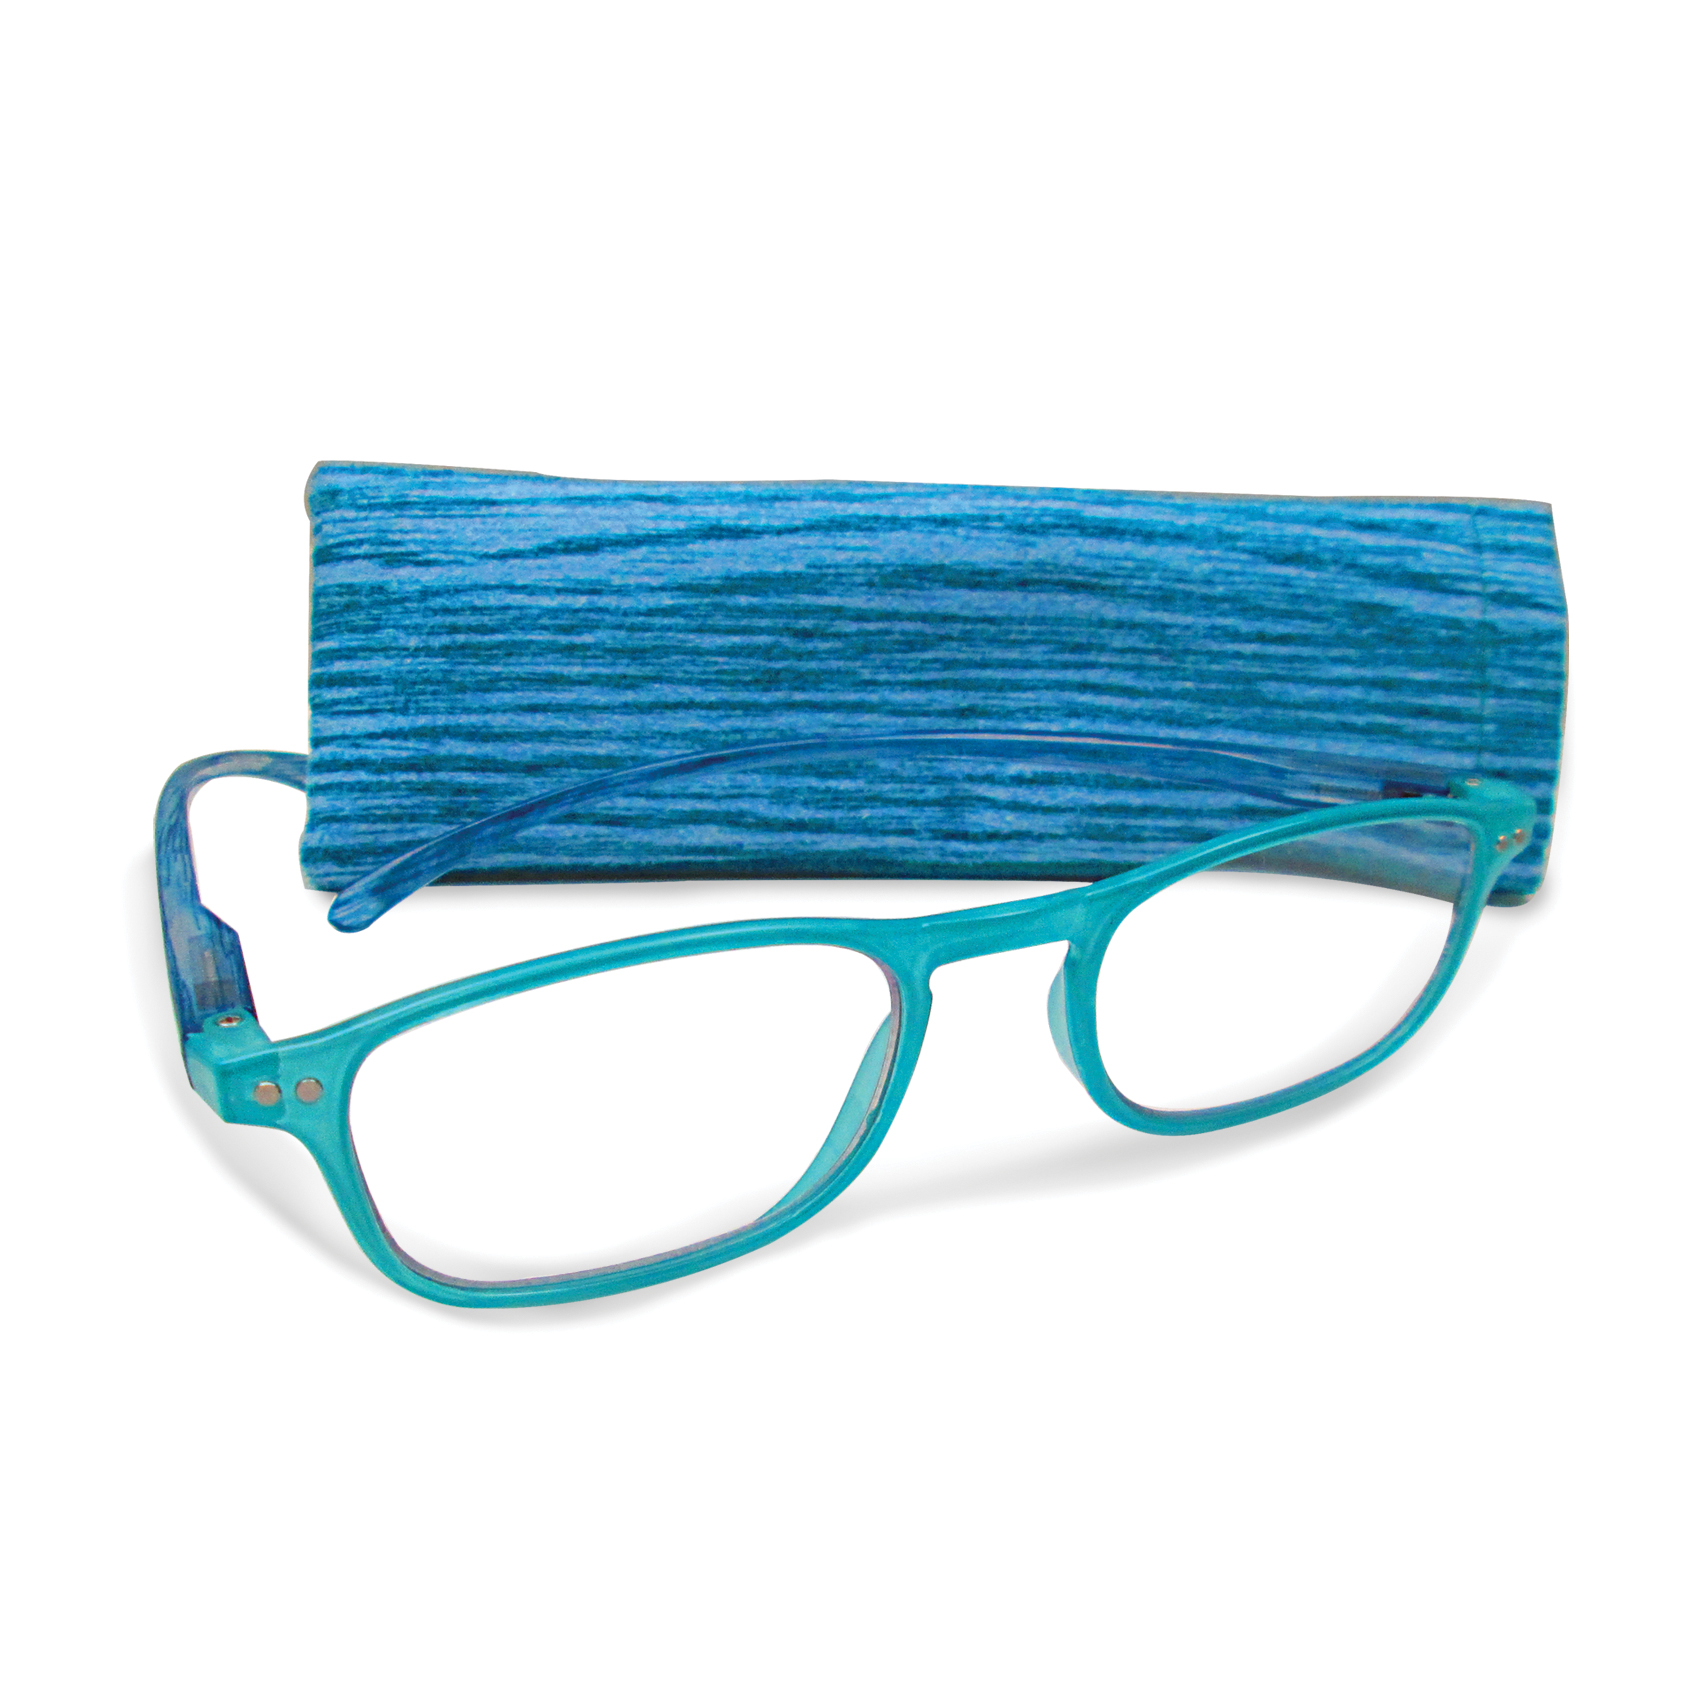 Blue +1.25 Magnification Reading Glasses